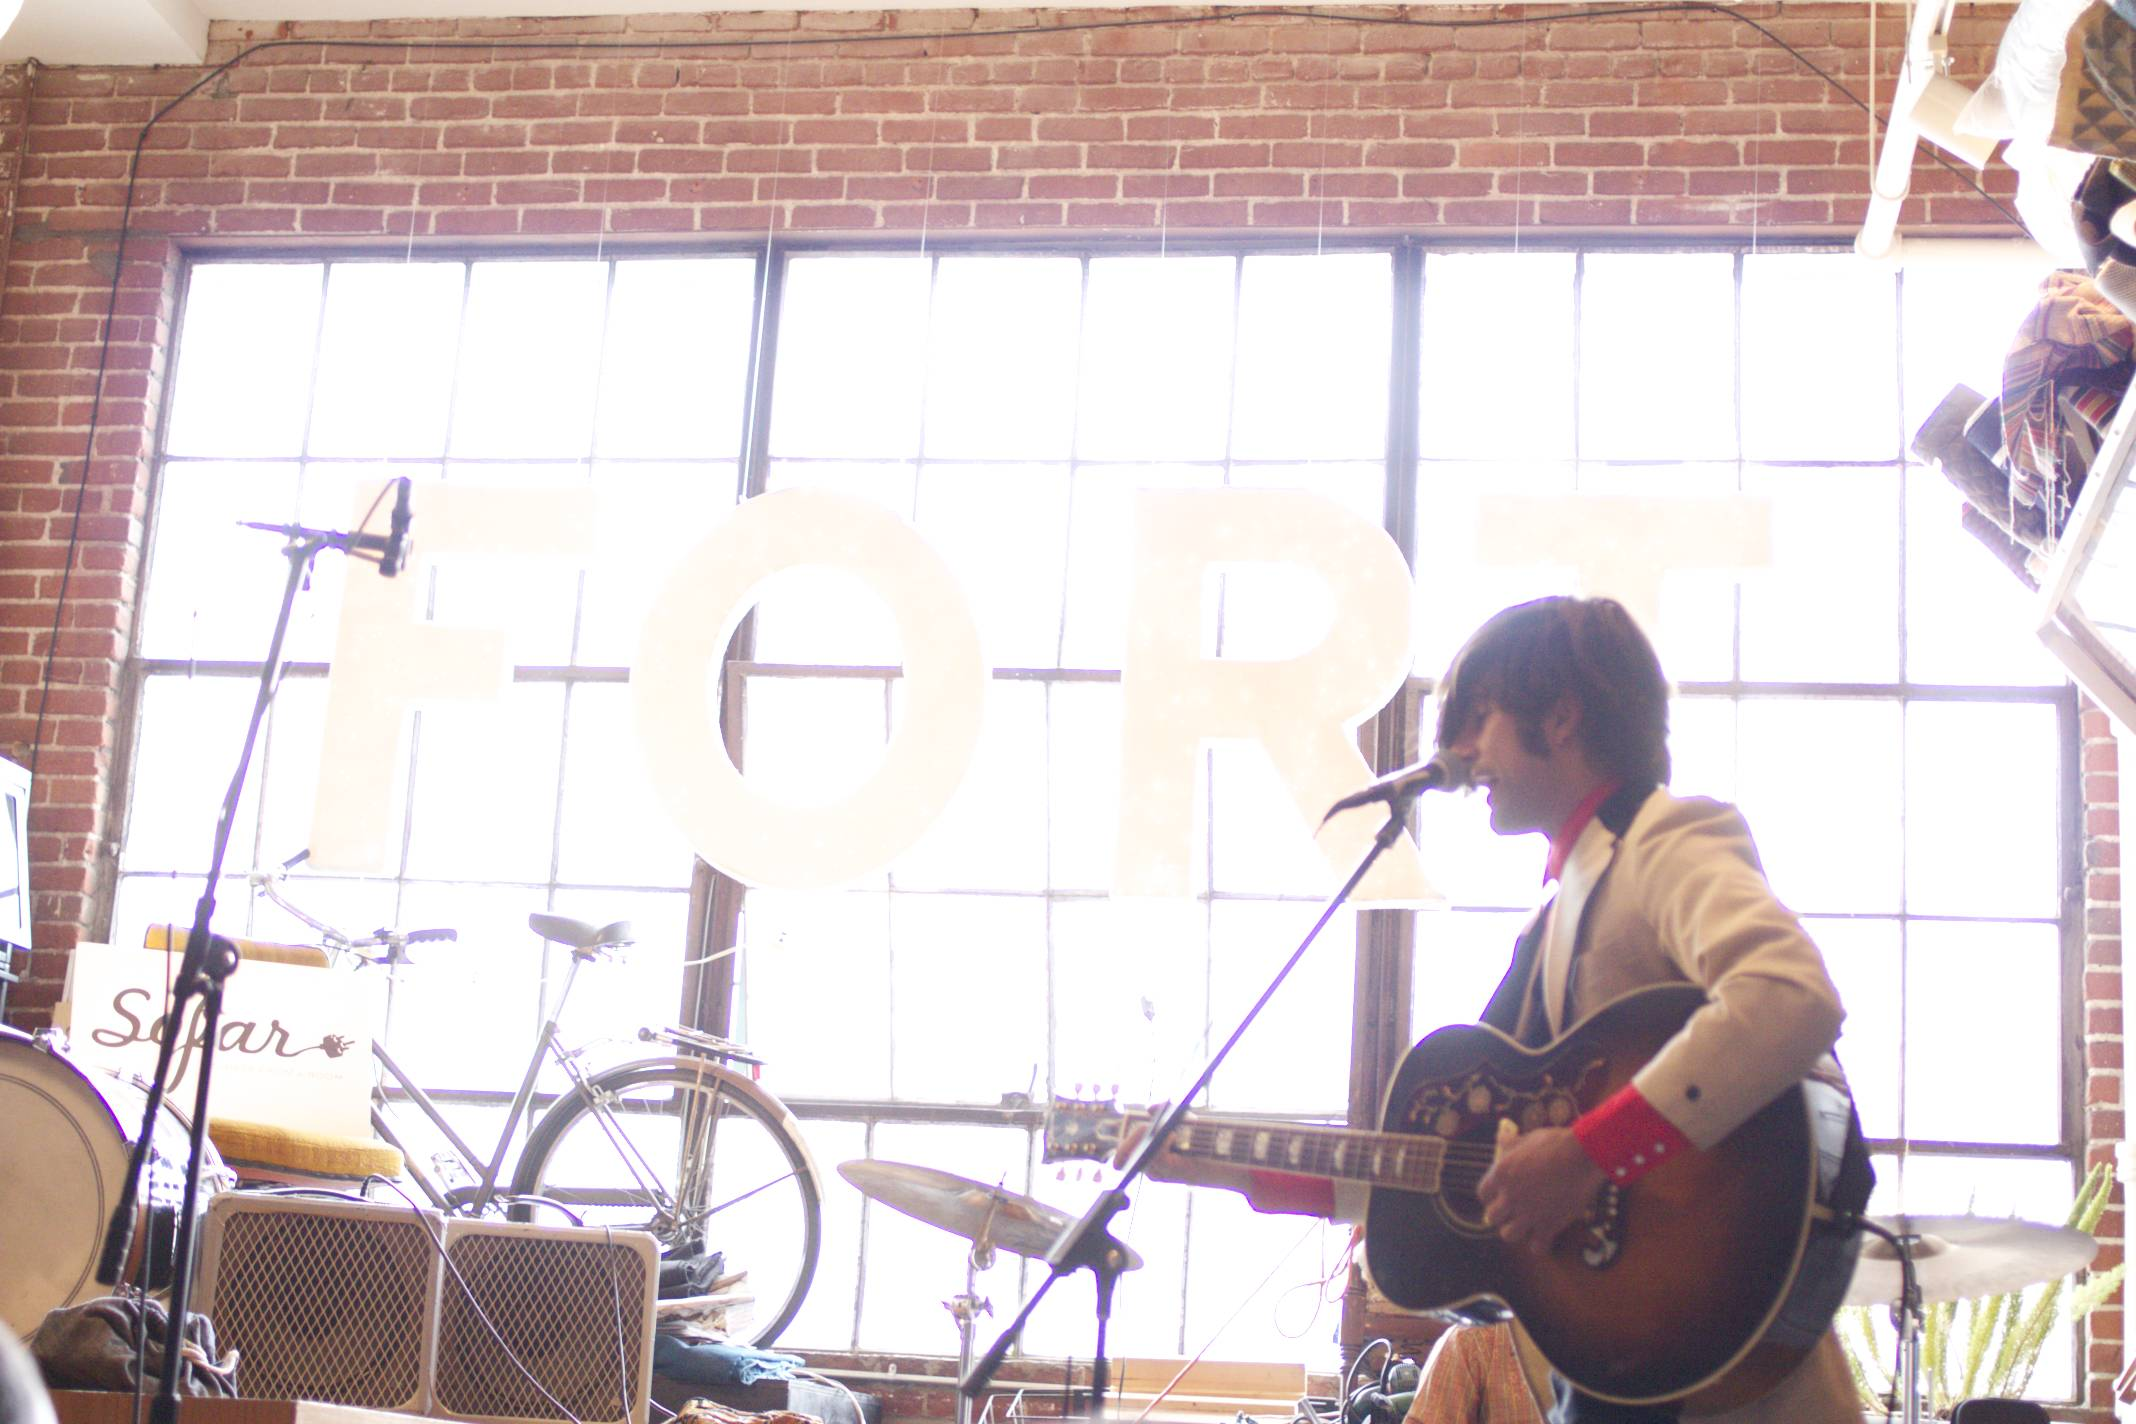 Ferocious Few at BUNCH Mag x Sofar Sounds show at FORT